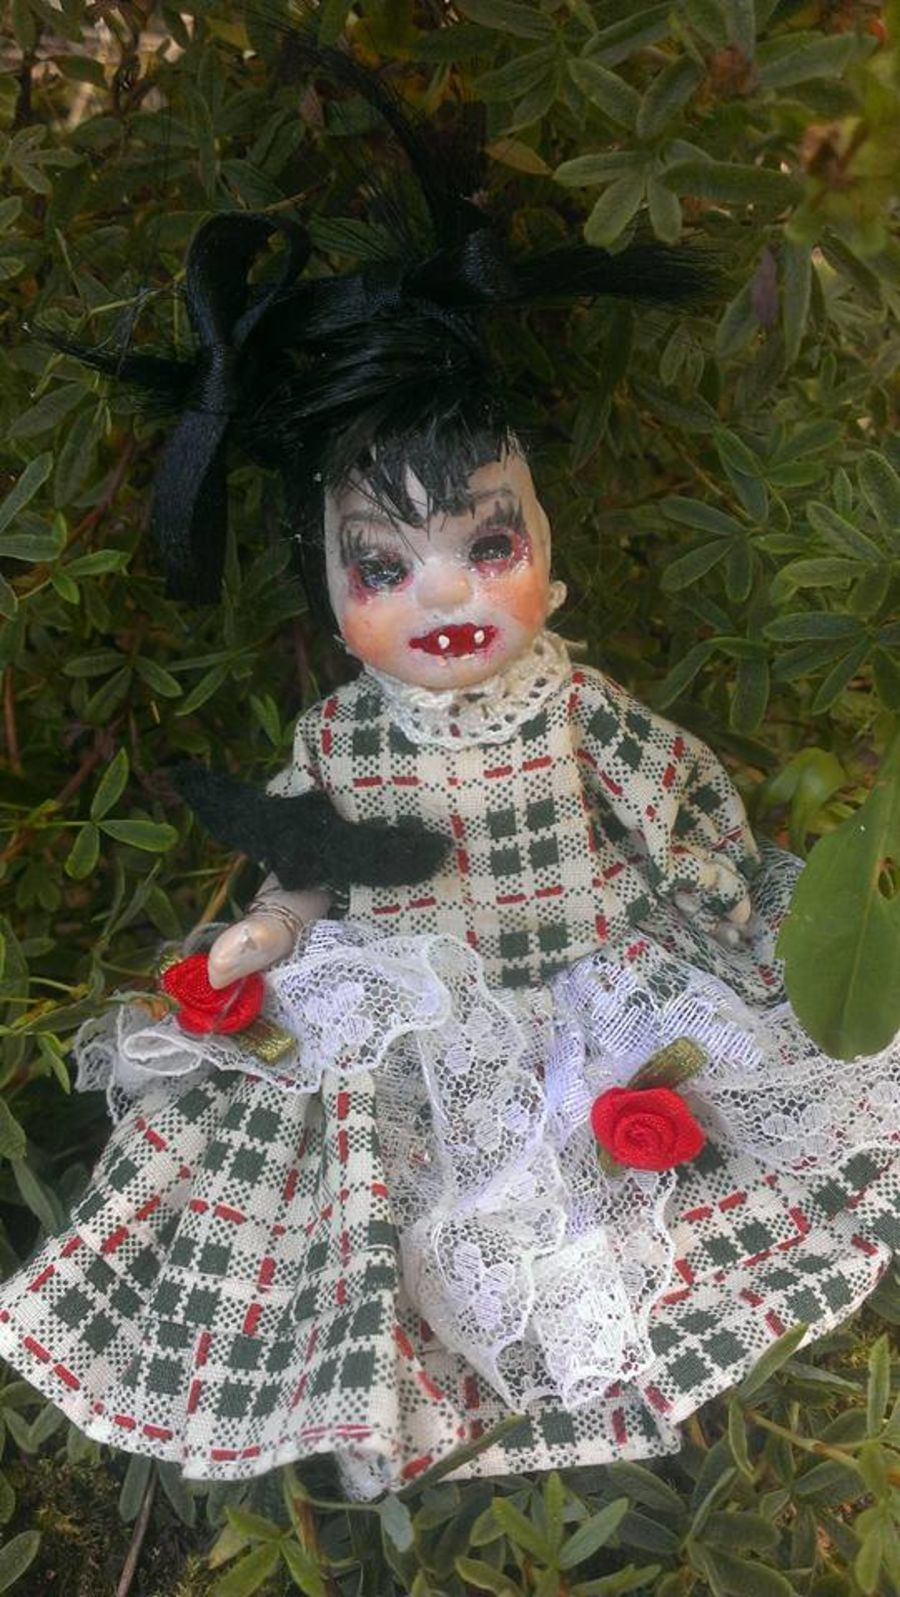 Vampire Baby Porcelain Doll with Bat